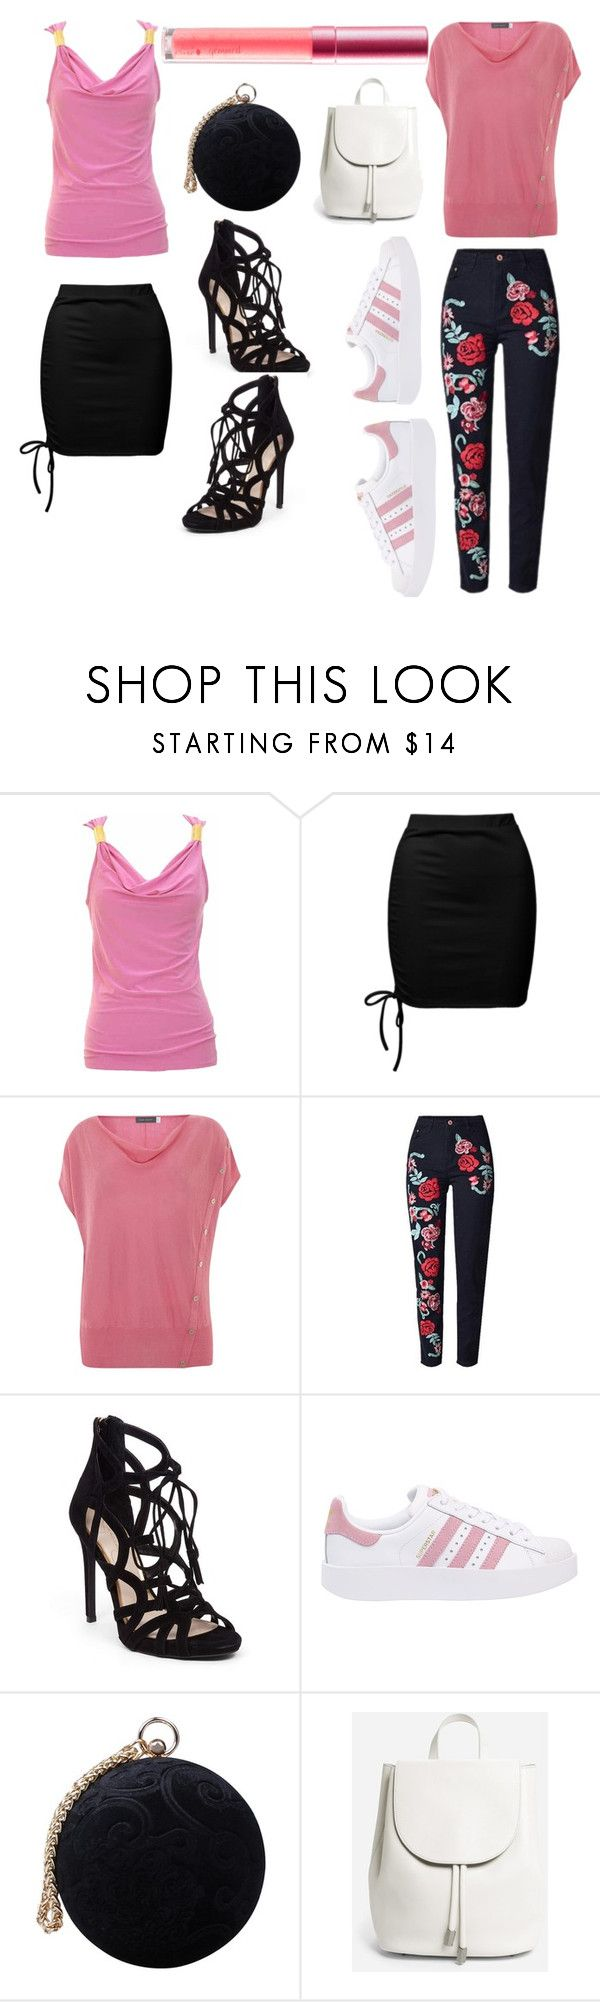 """Do both -pink collection"" by foxx-harvey ❤ liked on Polyvore featuring jon & anna, Sans Souci, Mint Velvet, Jessica Simpson, adidas Originals, Carvela and Everlane"